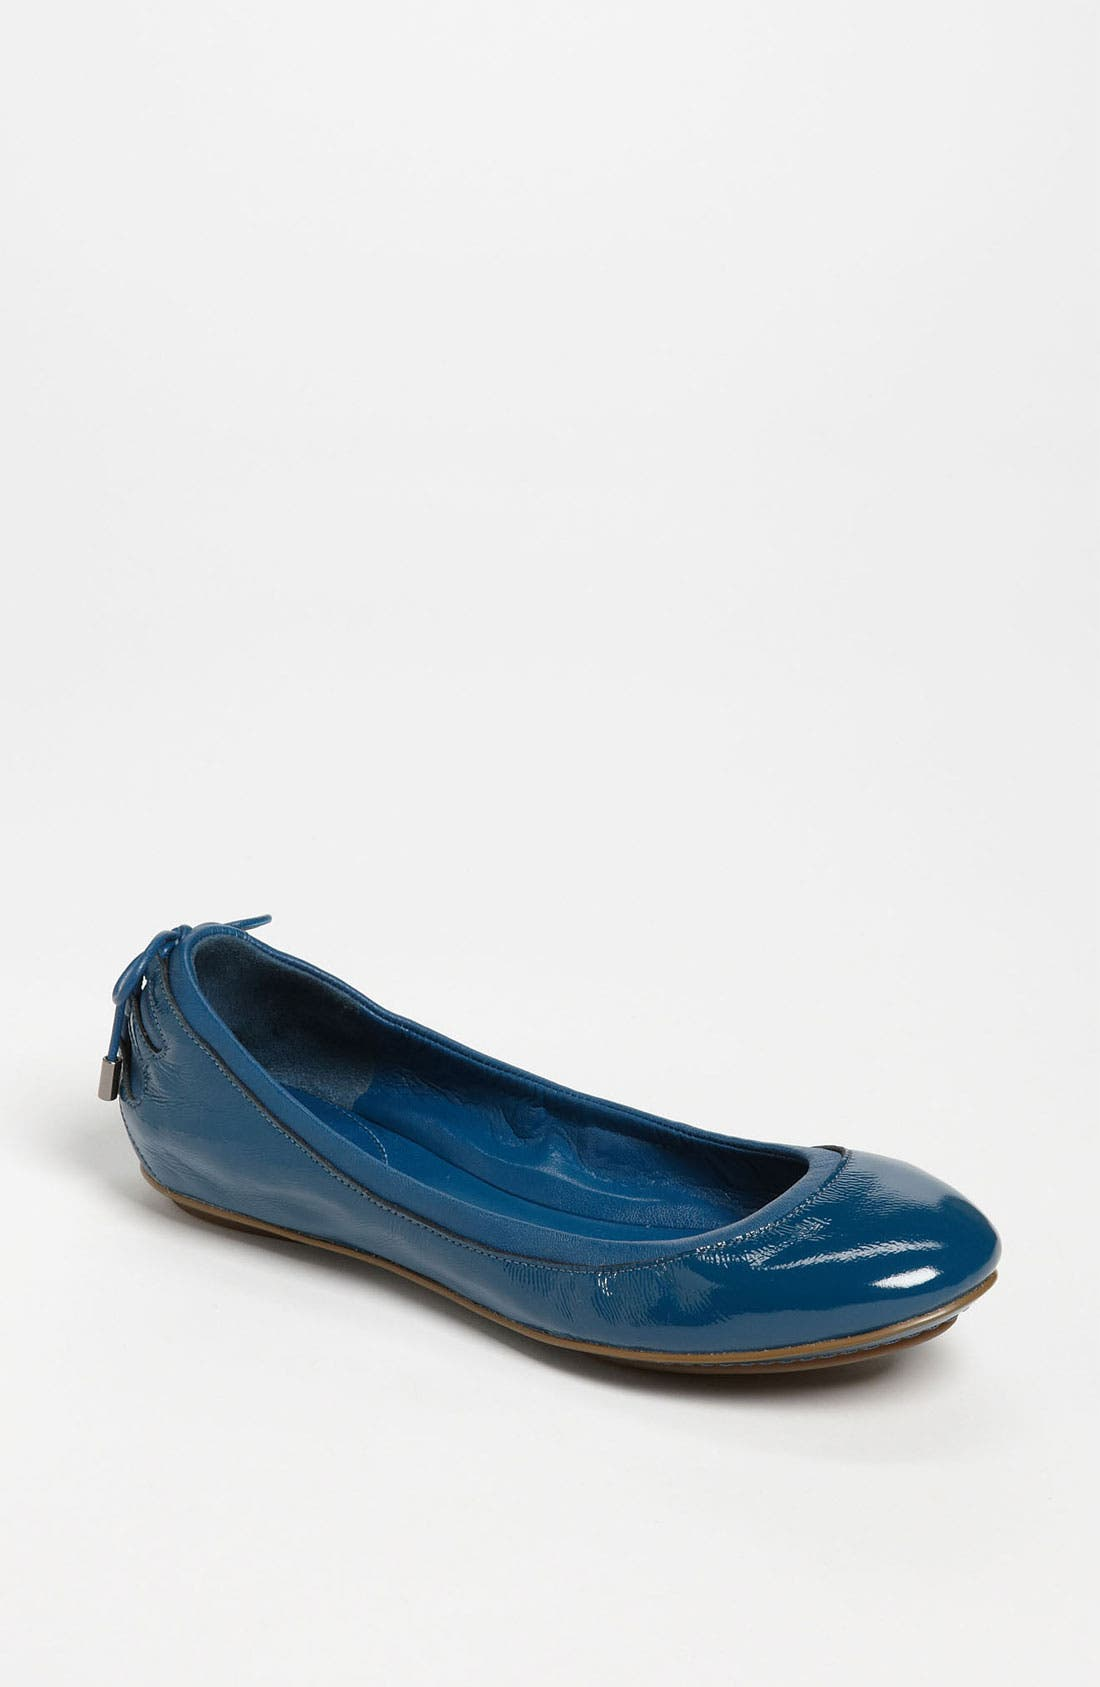 ,                             Maria Sharapova by Cole Haan 'Air Bacara' Flat,                             Main thumbnail 75, color,                             440